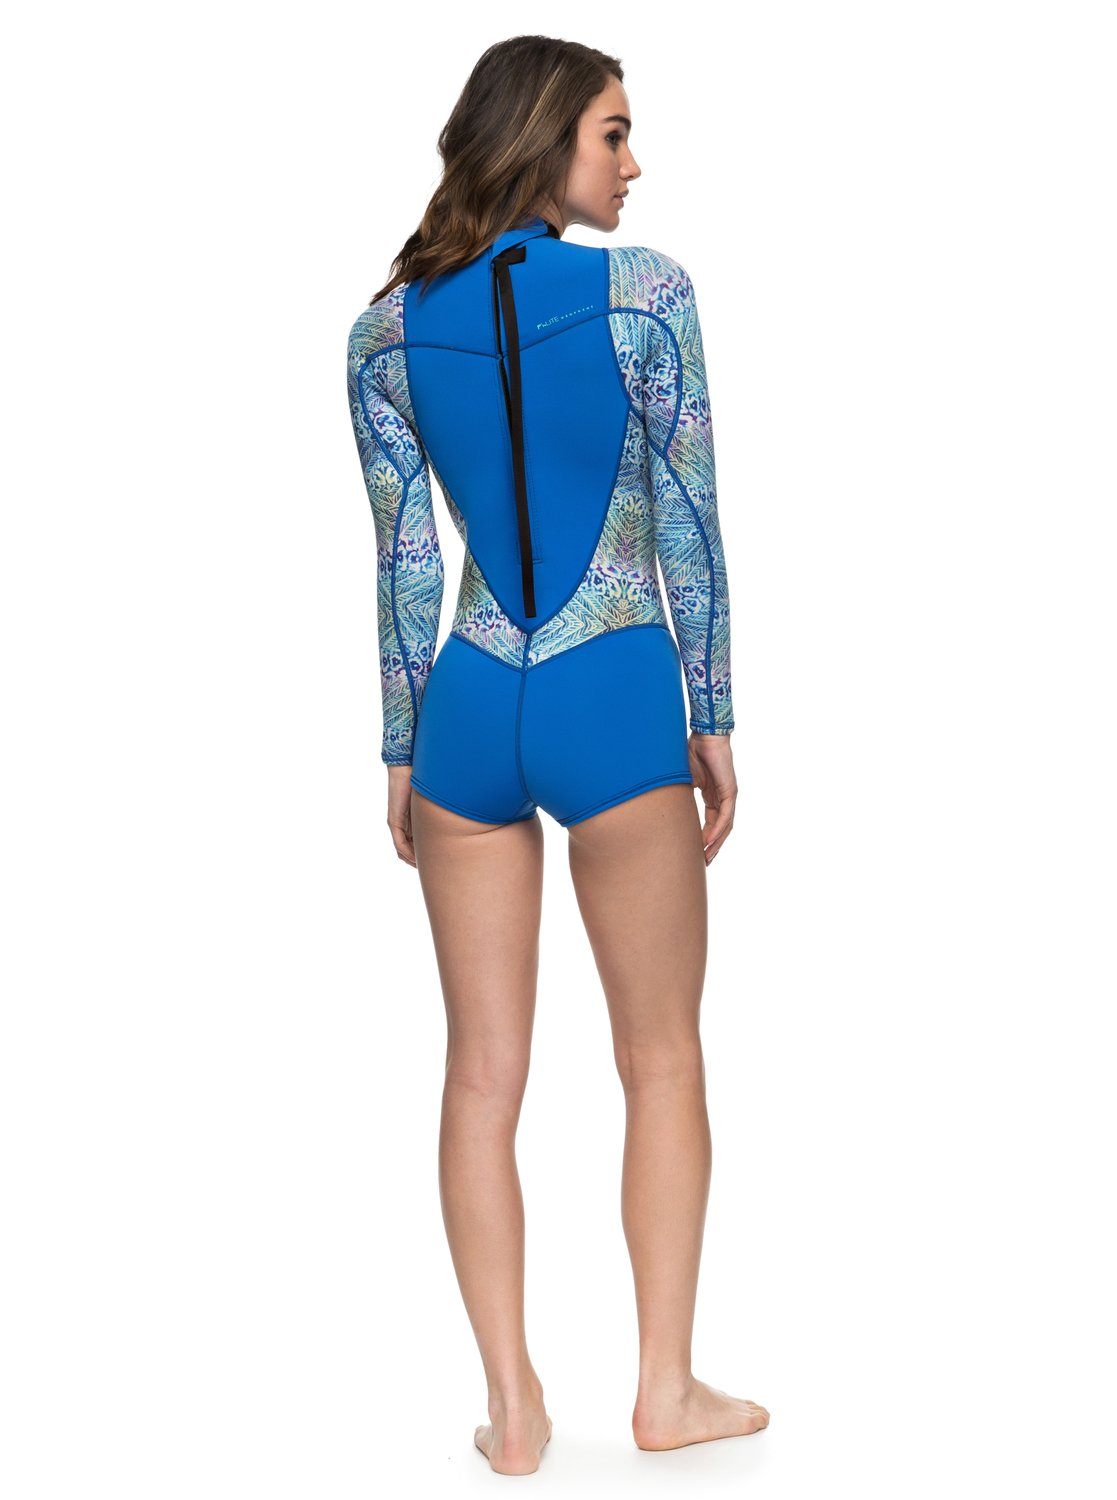 346c97330f ROXY 2mm Syncro Series Long Sleeve Back Zip FLT Springsuit ...